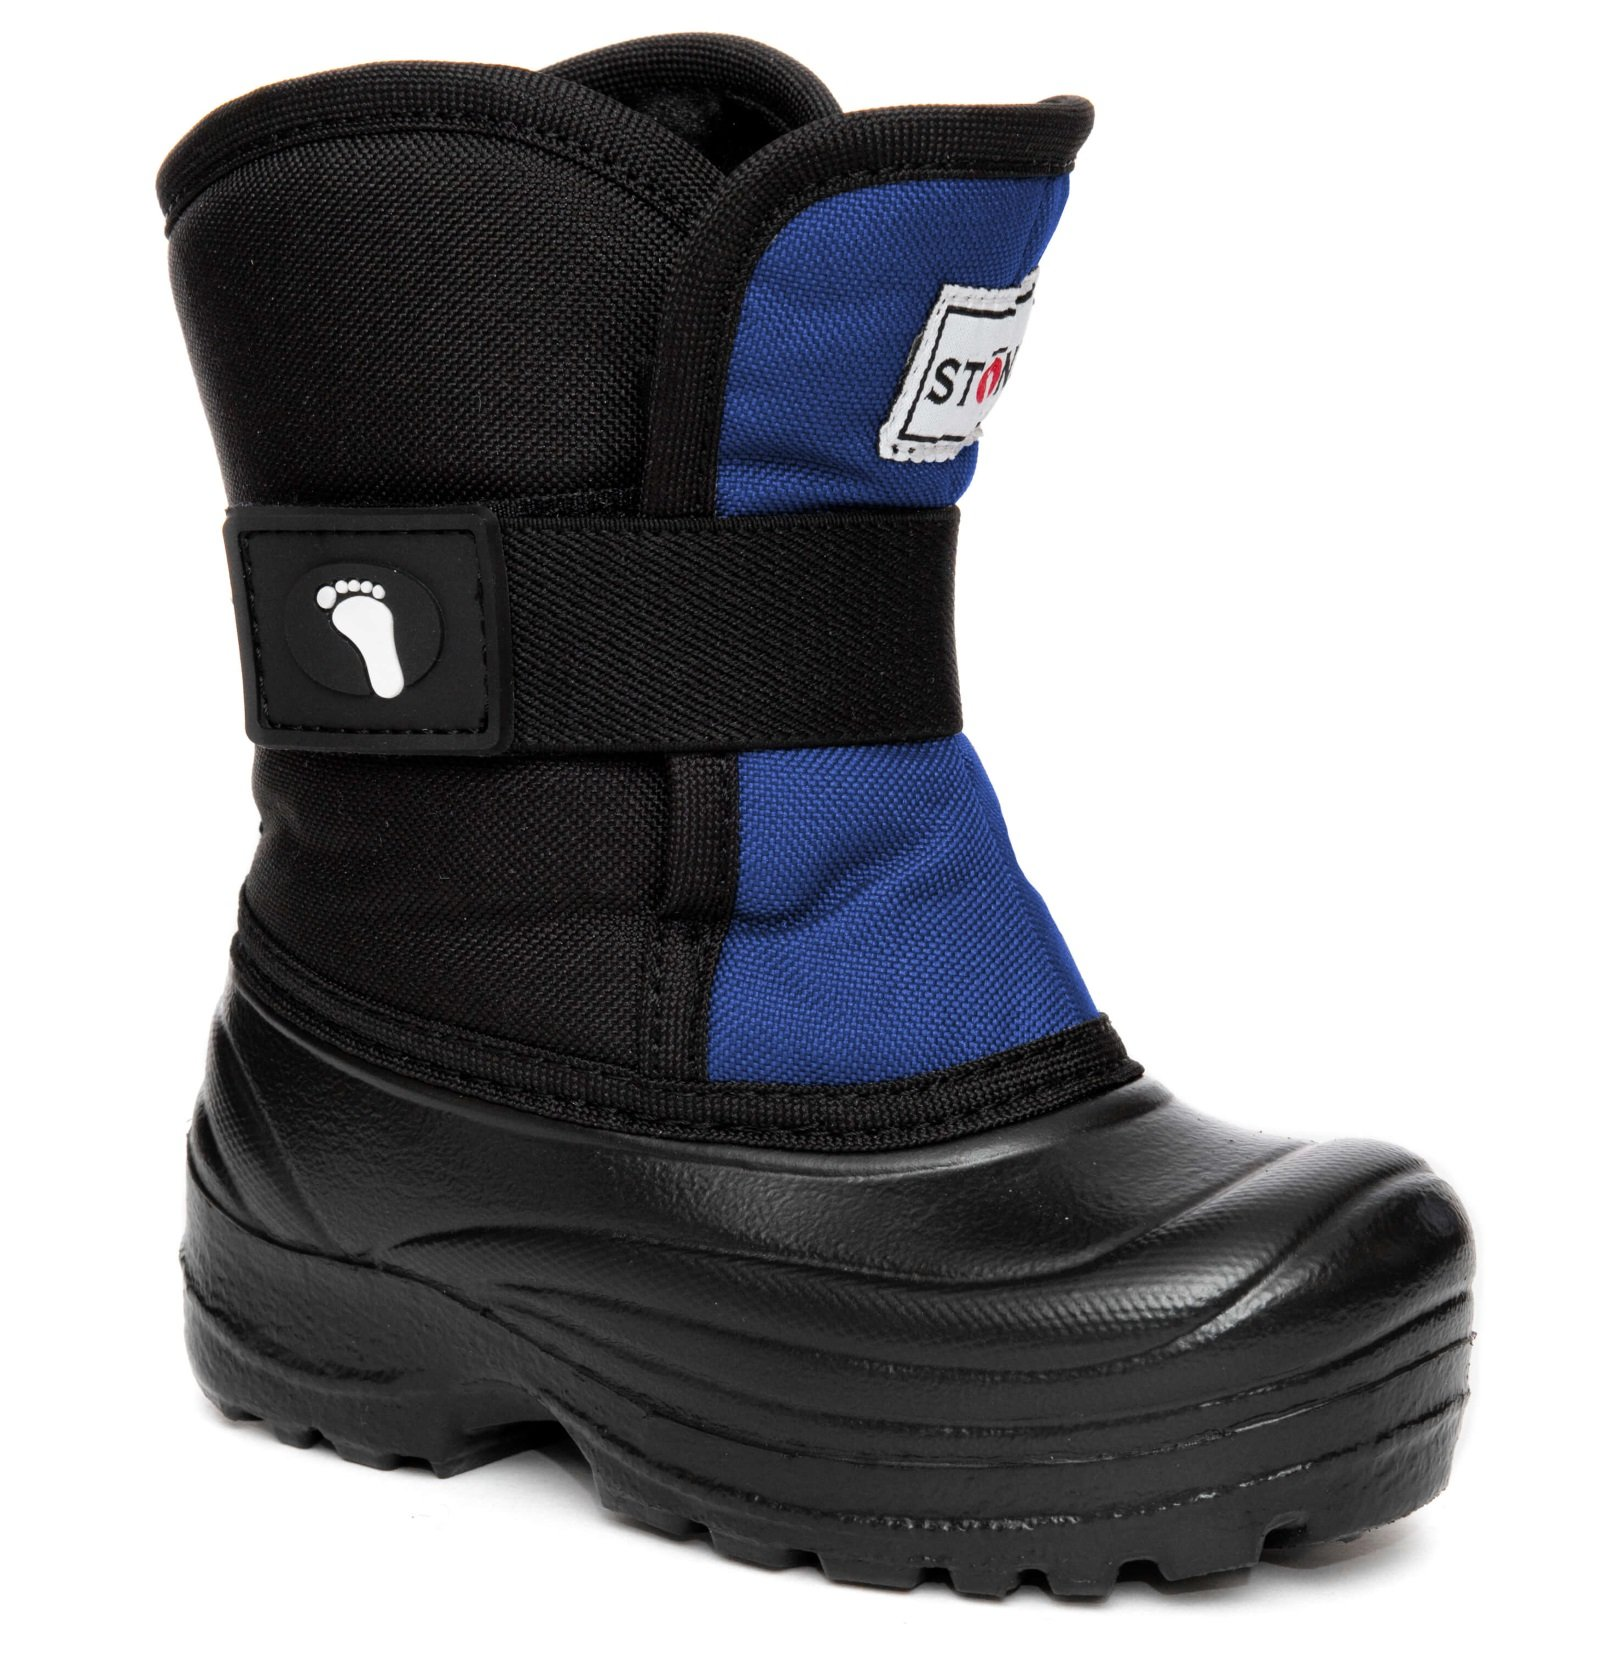 Stonz Scout Winter Boots for Cold Weather, Snow, Ice and Winter Sports - Insulated, Super Light & Warm - Slate Blue/Black, 5T